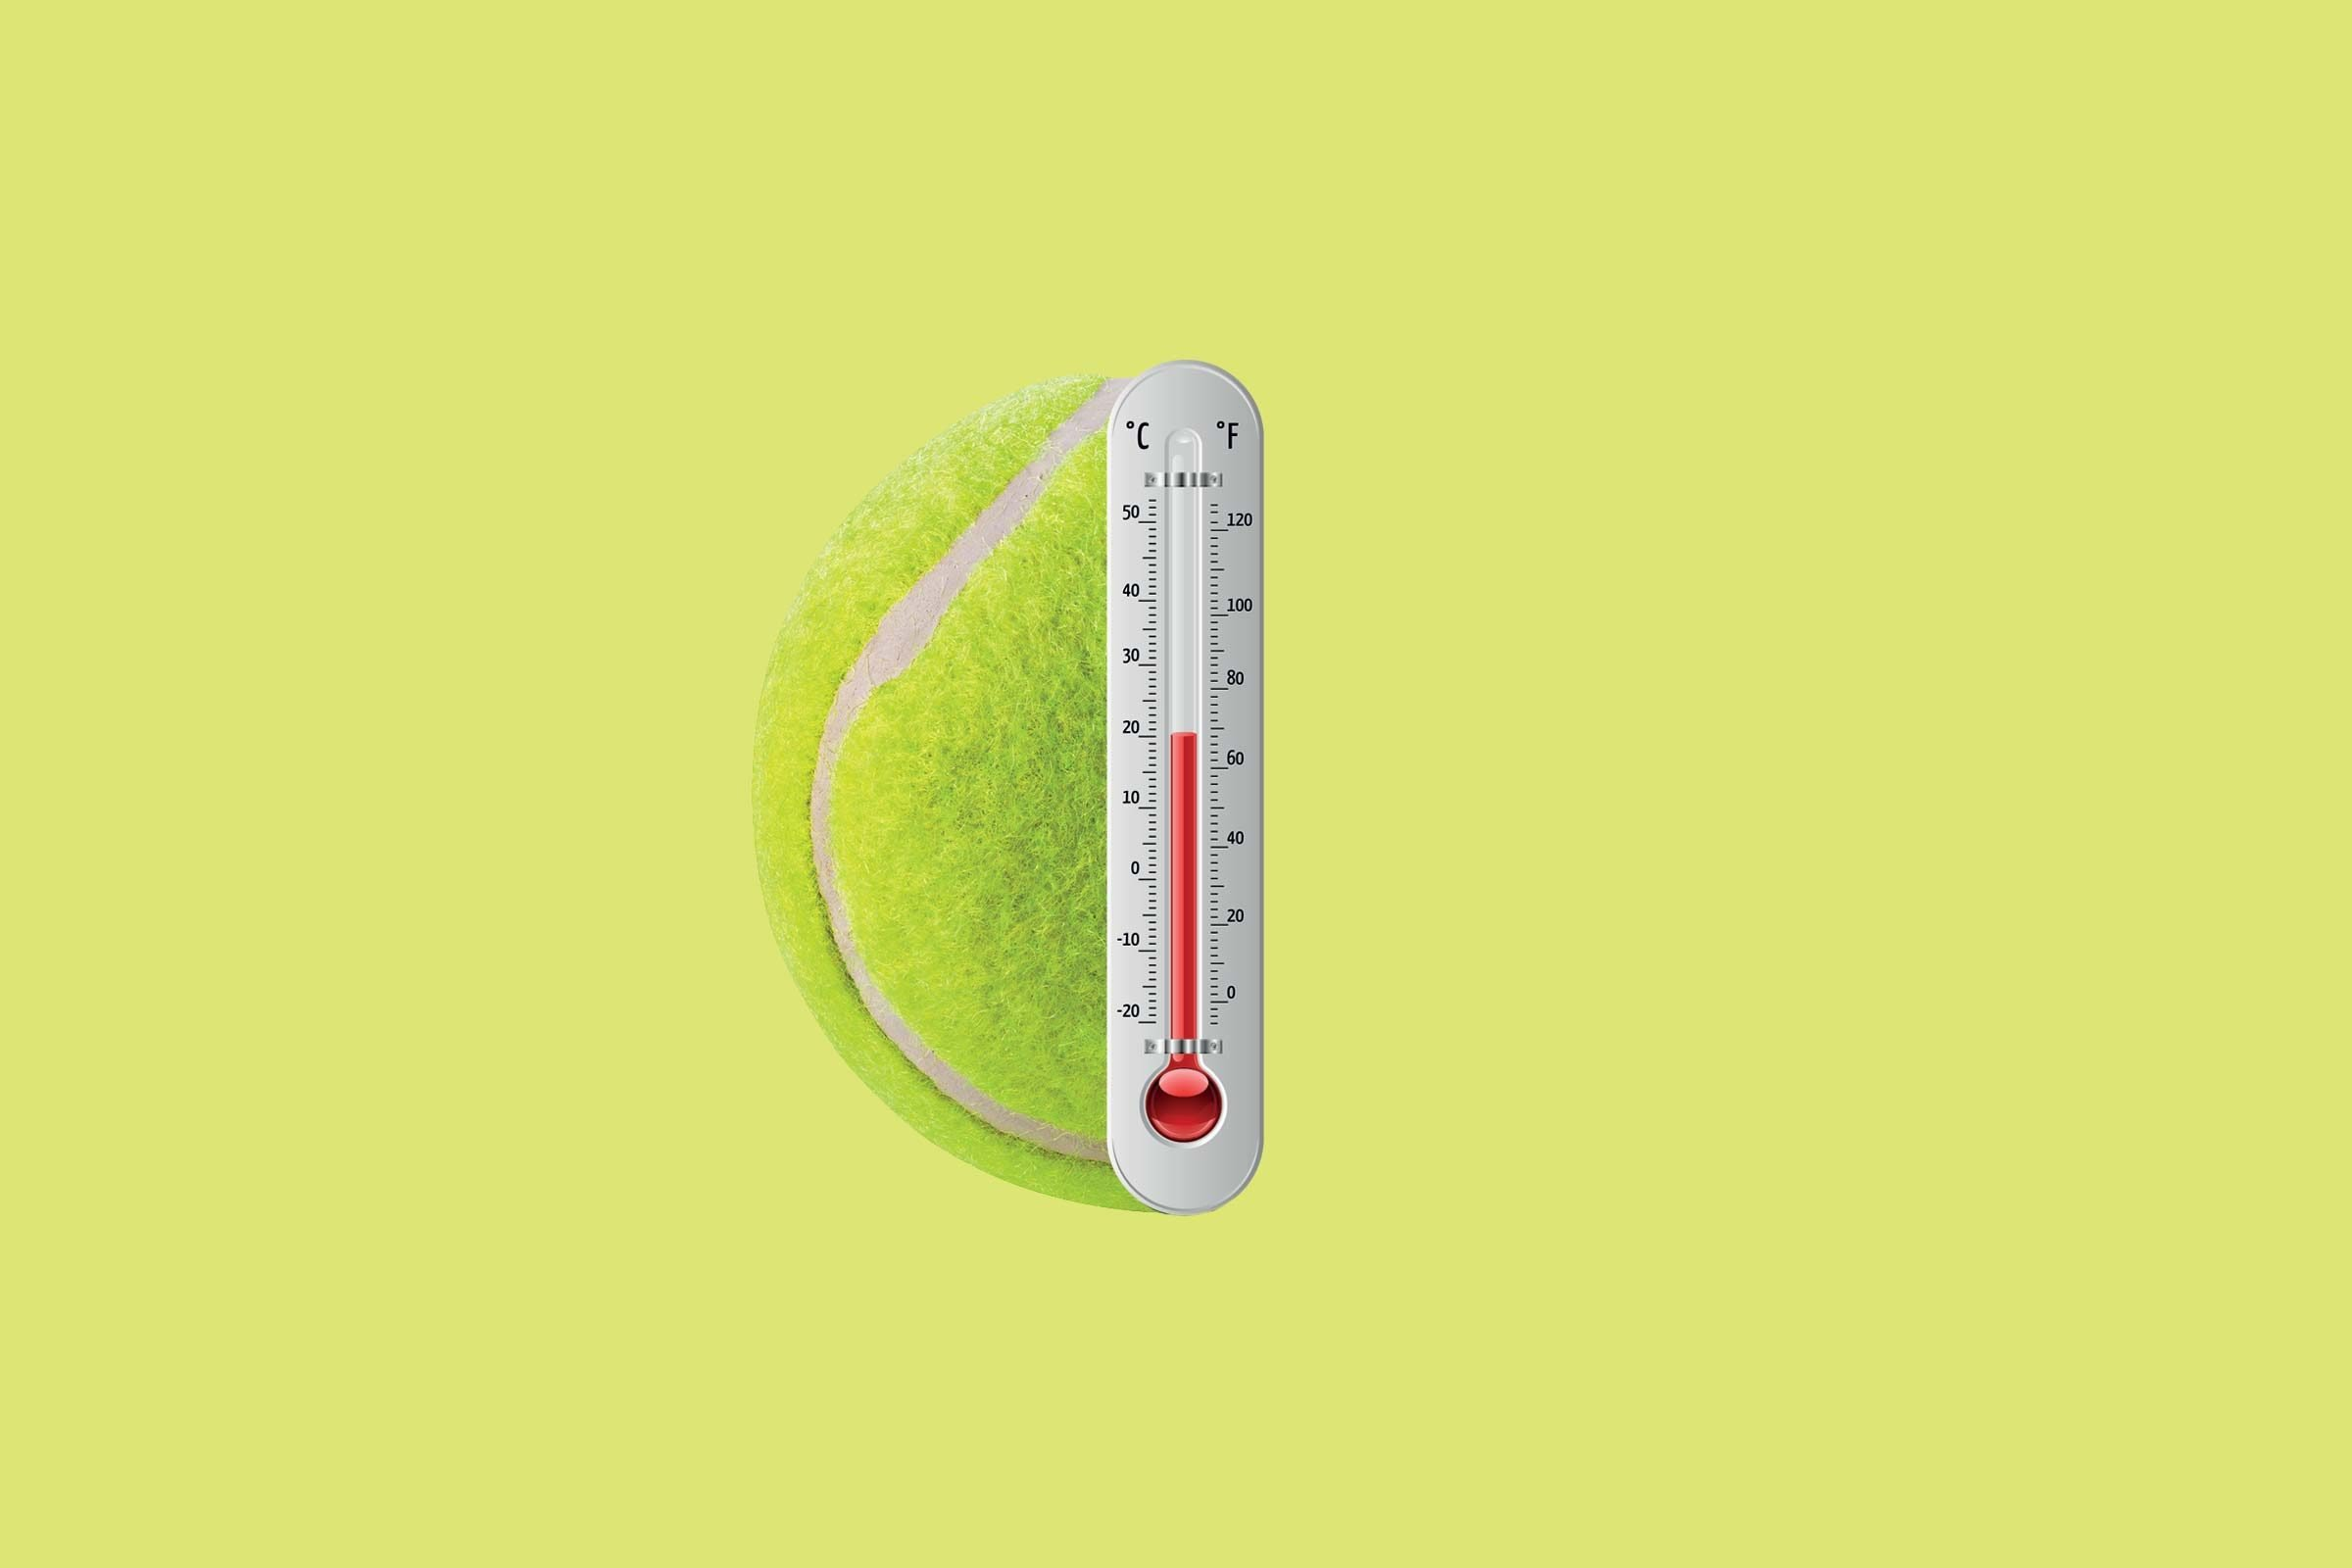 wimbledon tennis balls are kept at 68 degrees F